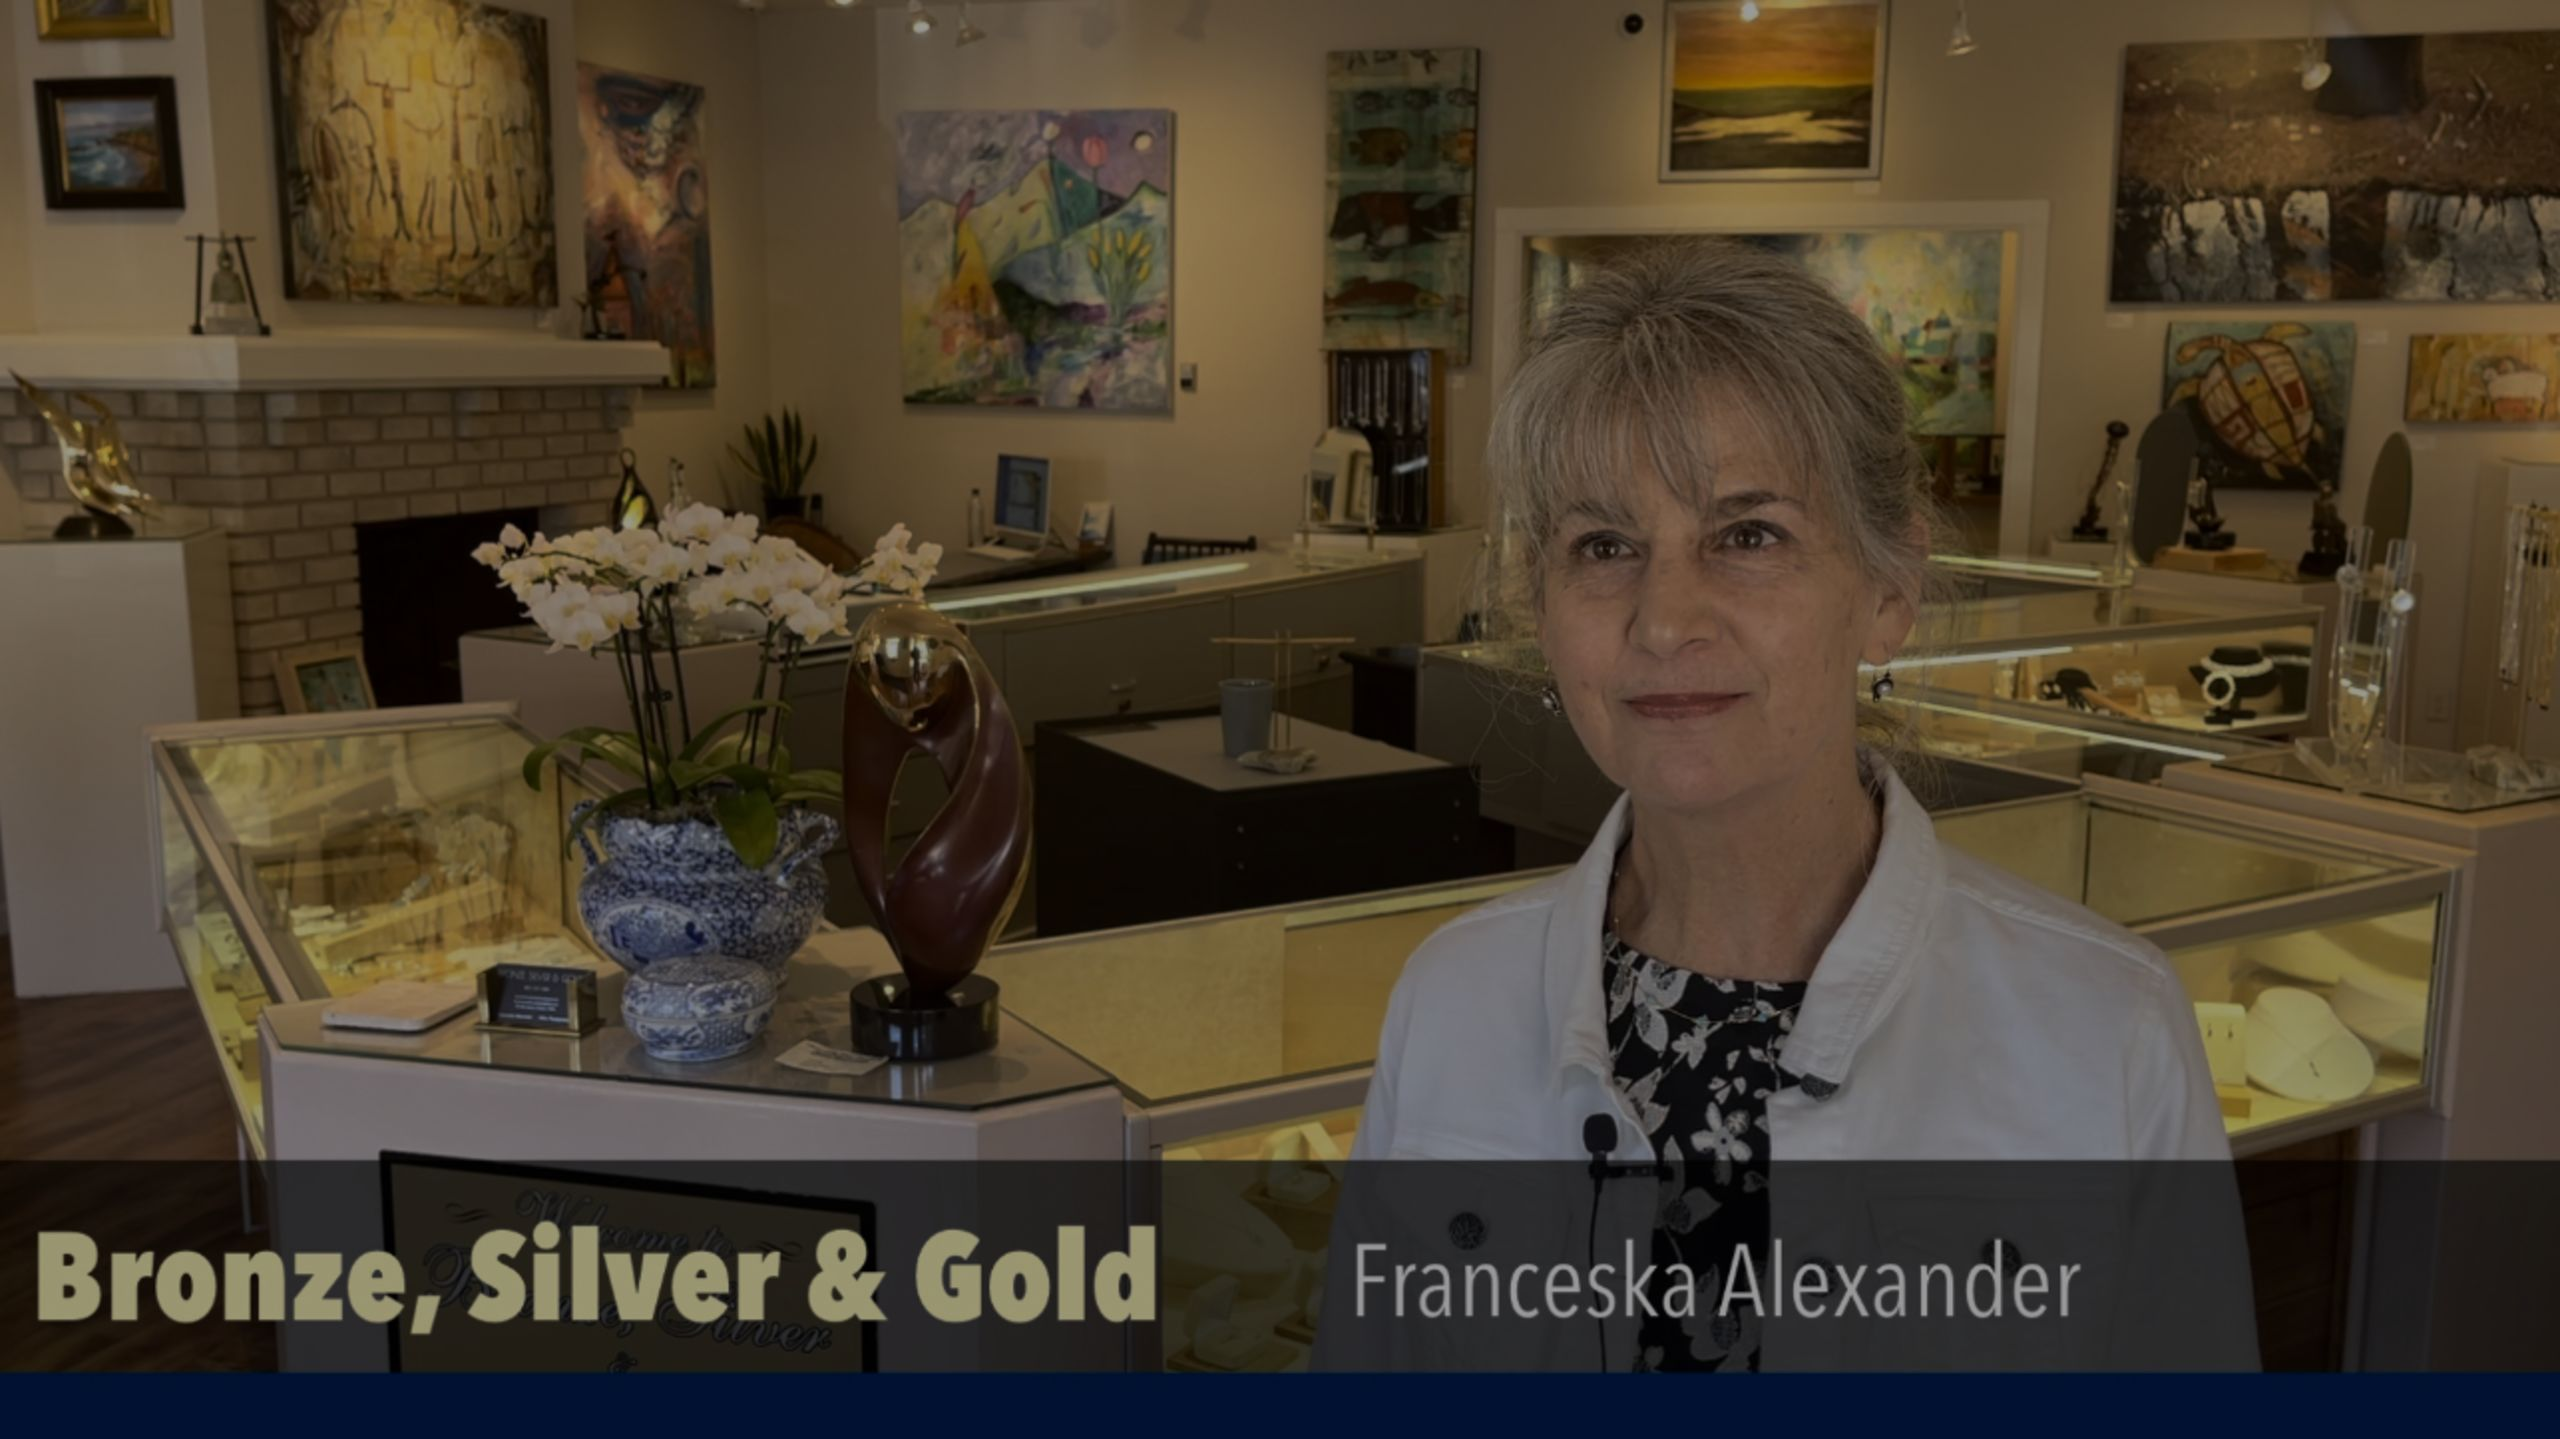 Bronze, Silver & Gold Gallery in Cambria under new ownership